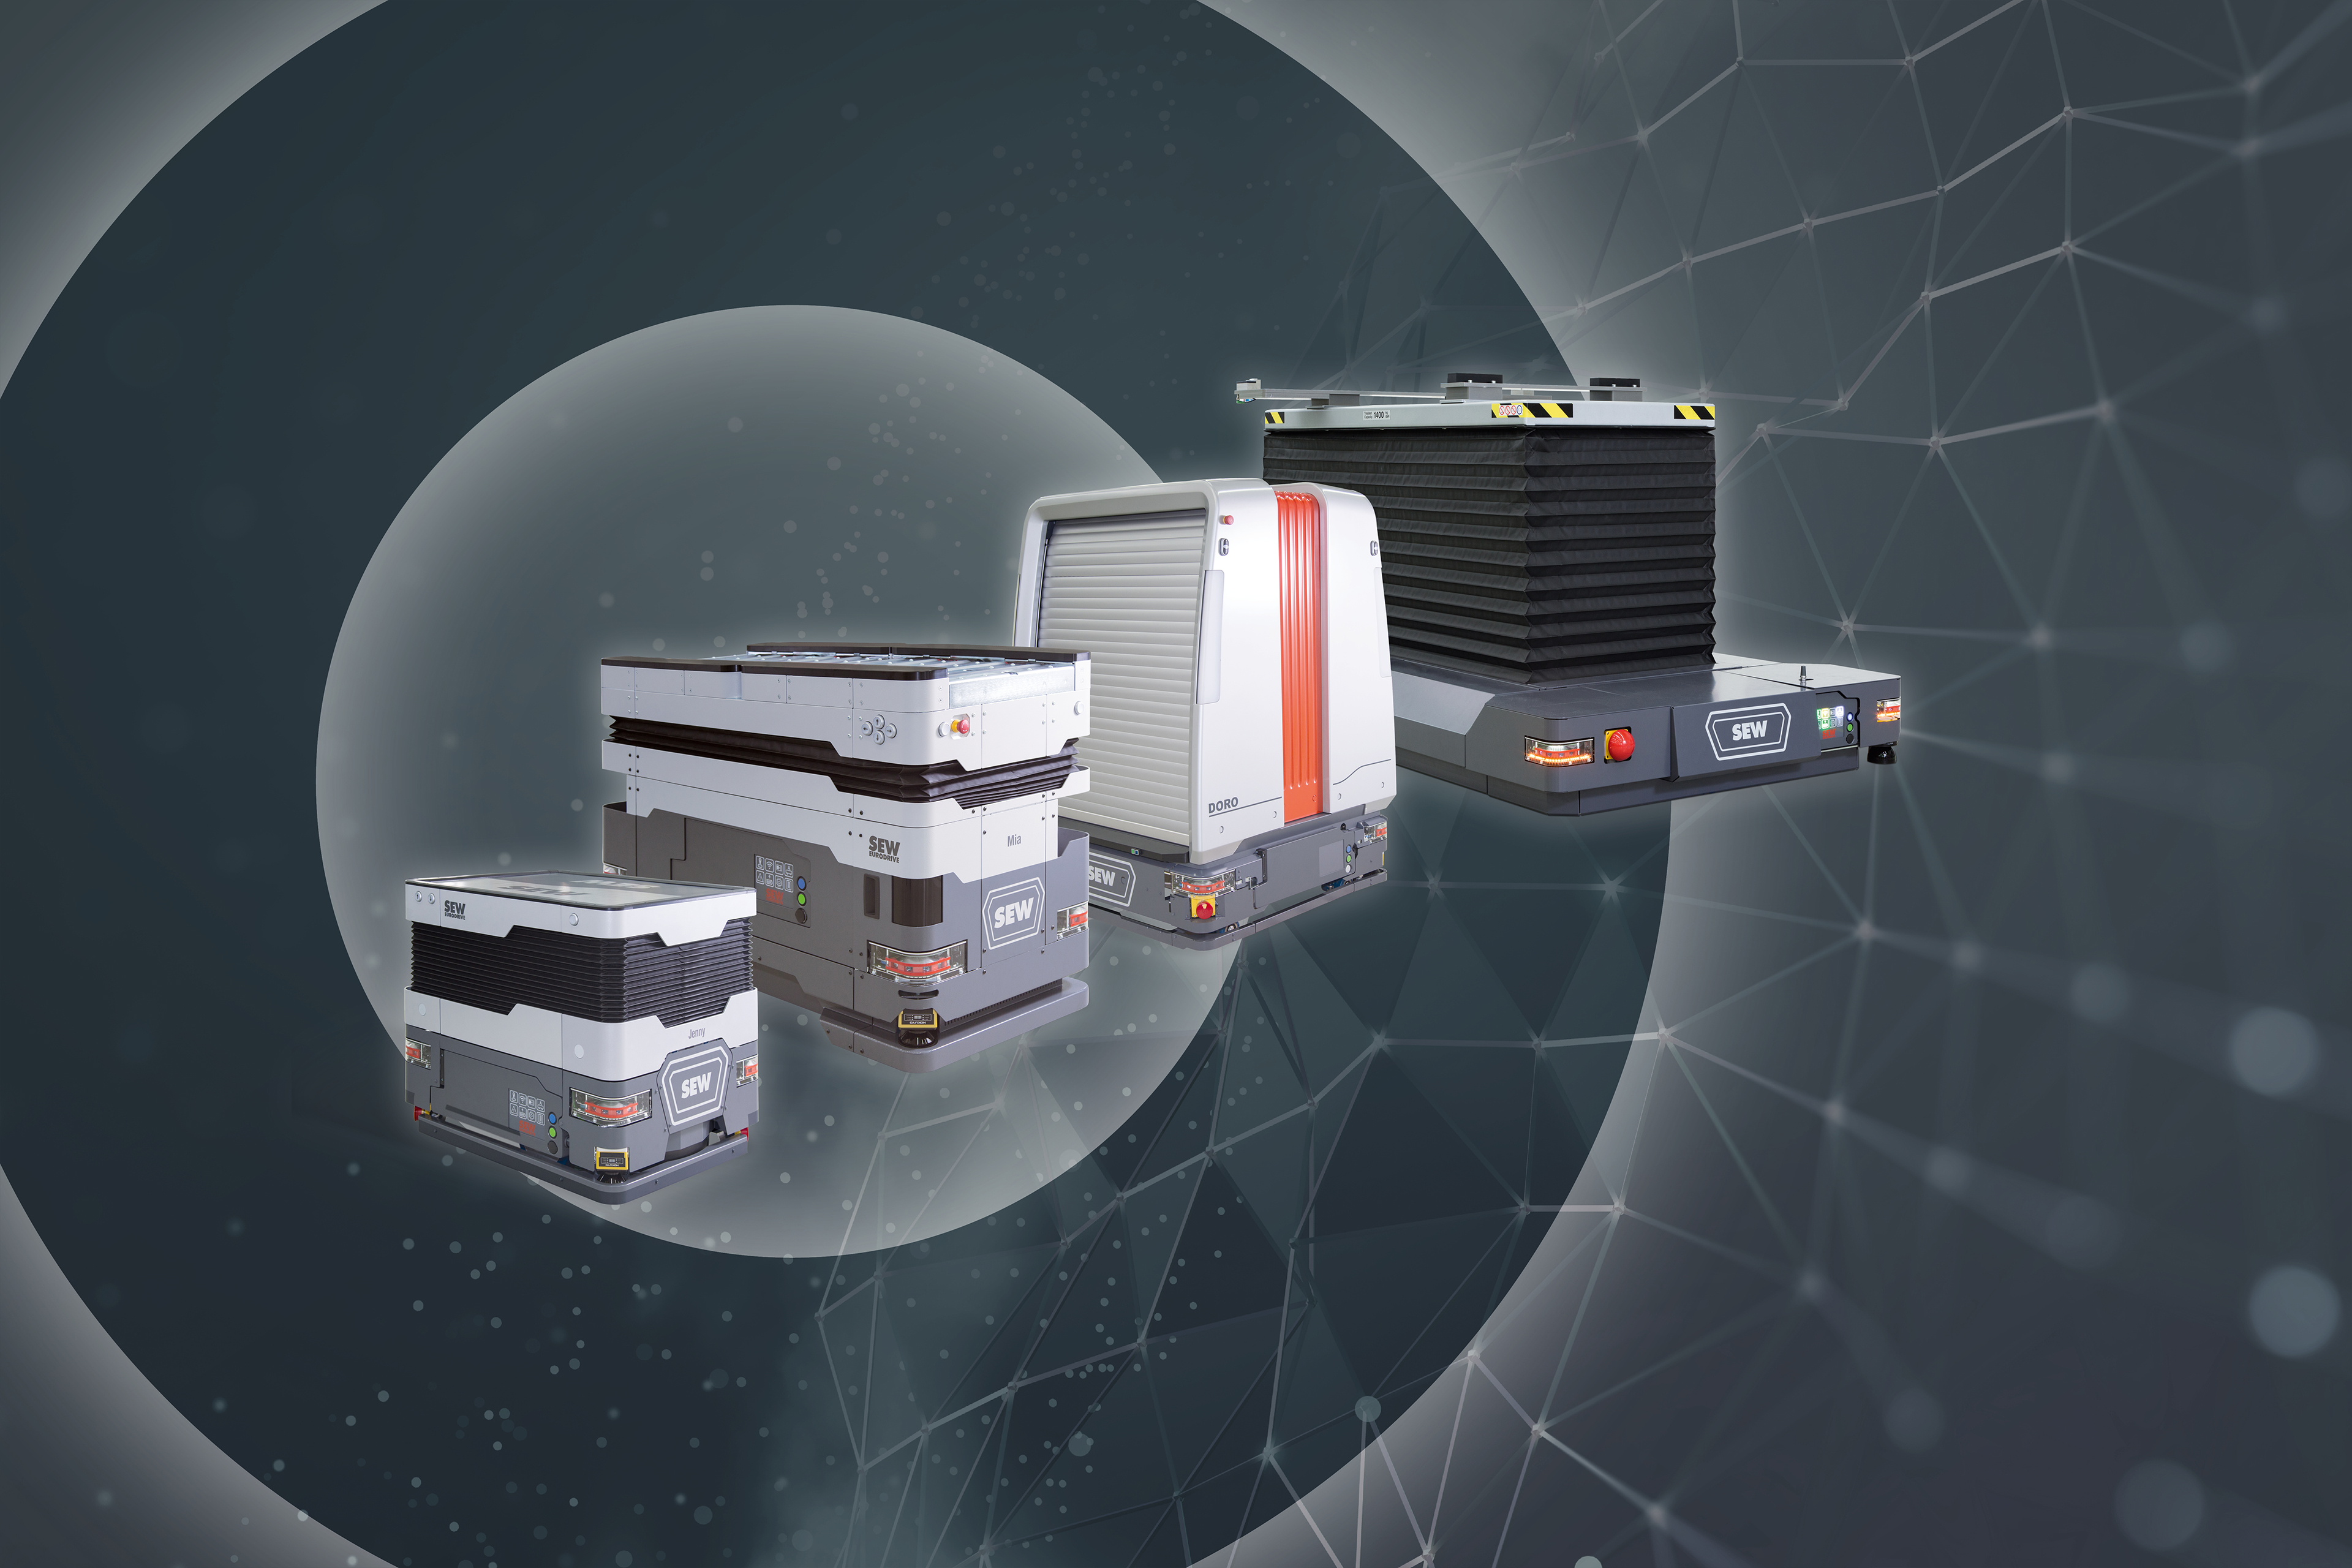 Mobile automated guided assistants